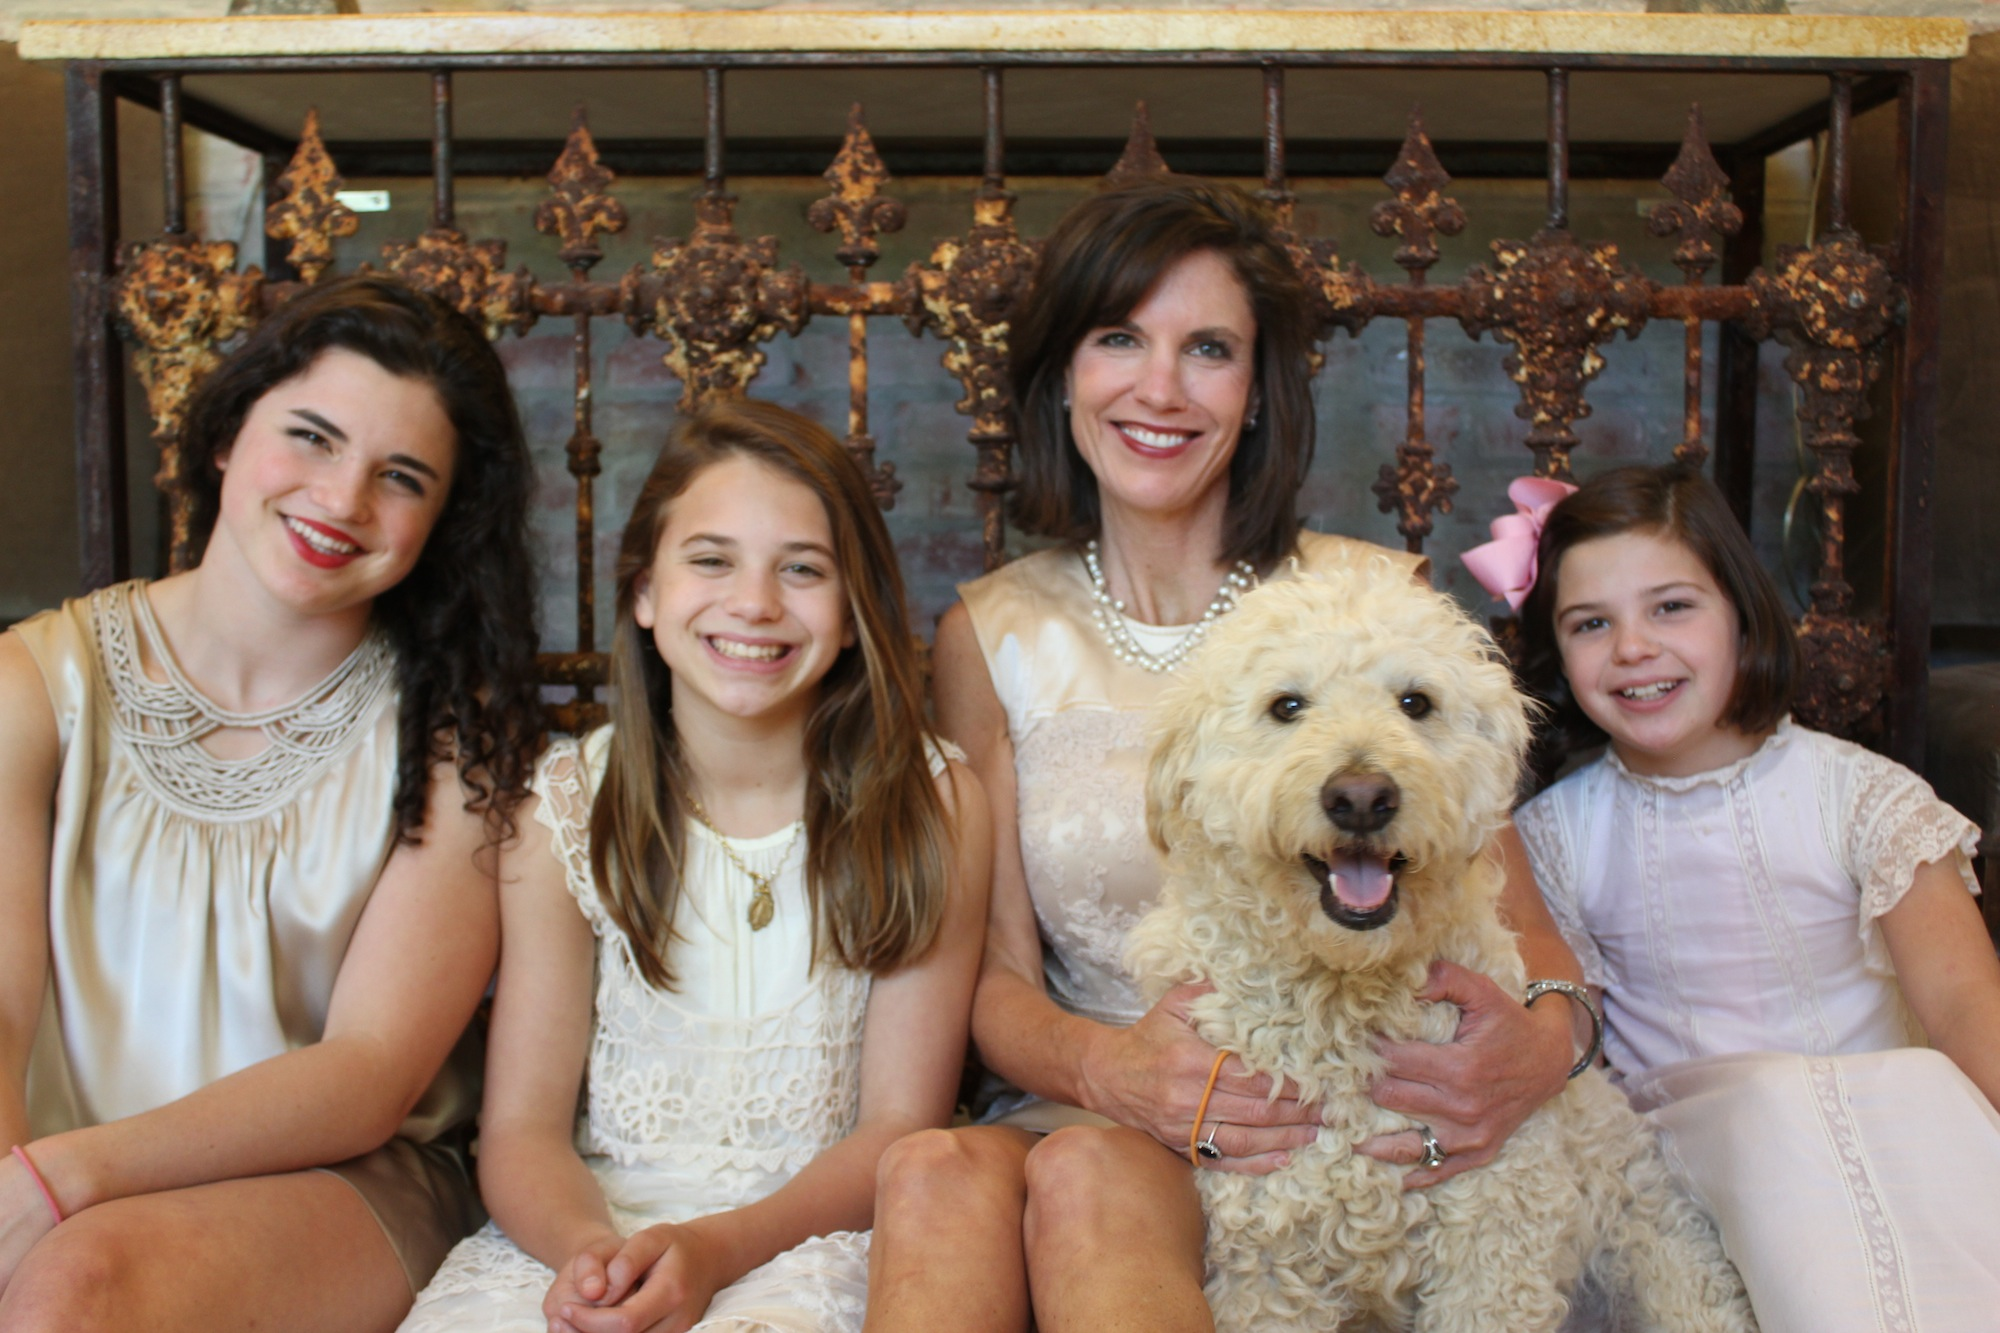 The Parker Girls